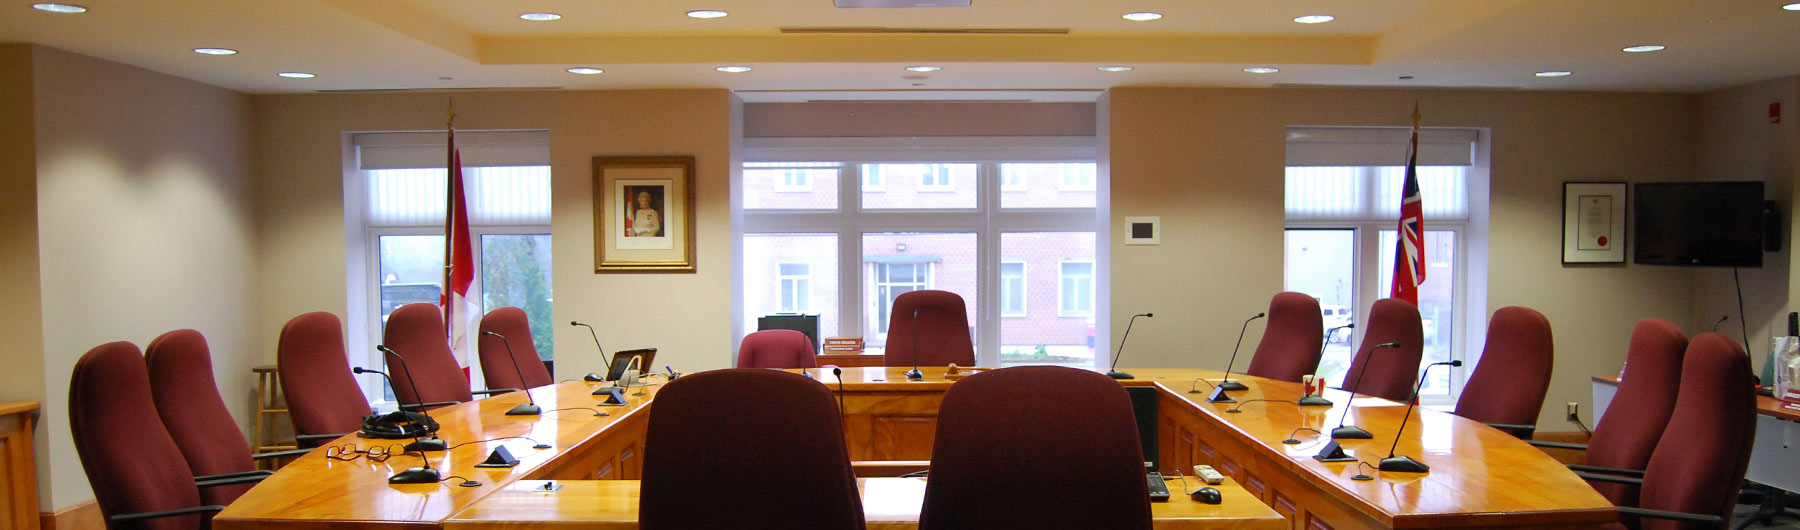 council chambers desk and chairs